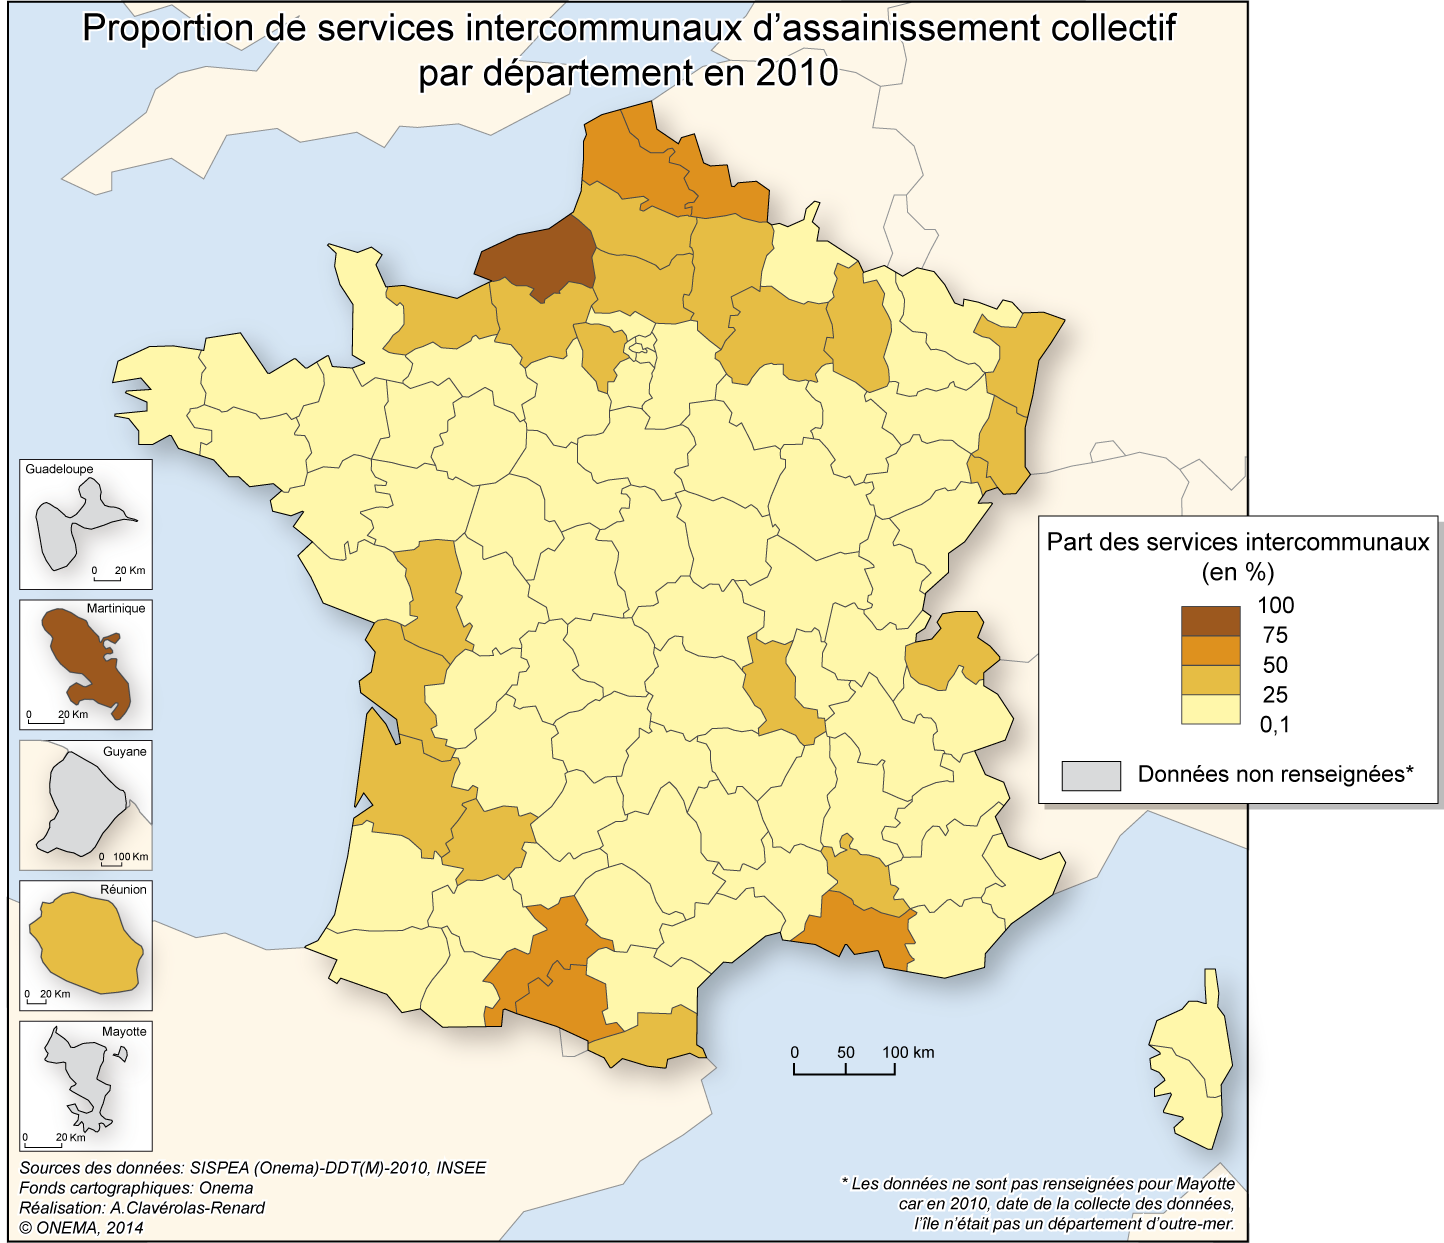 4)	Proportion de services intercommunaux d'assainissement collectif en 2010